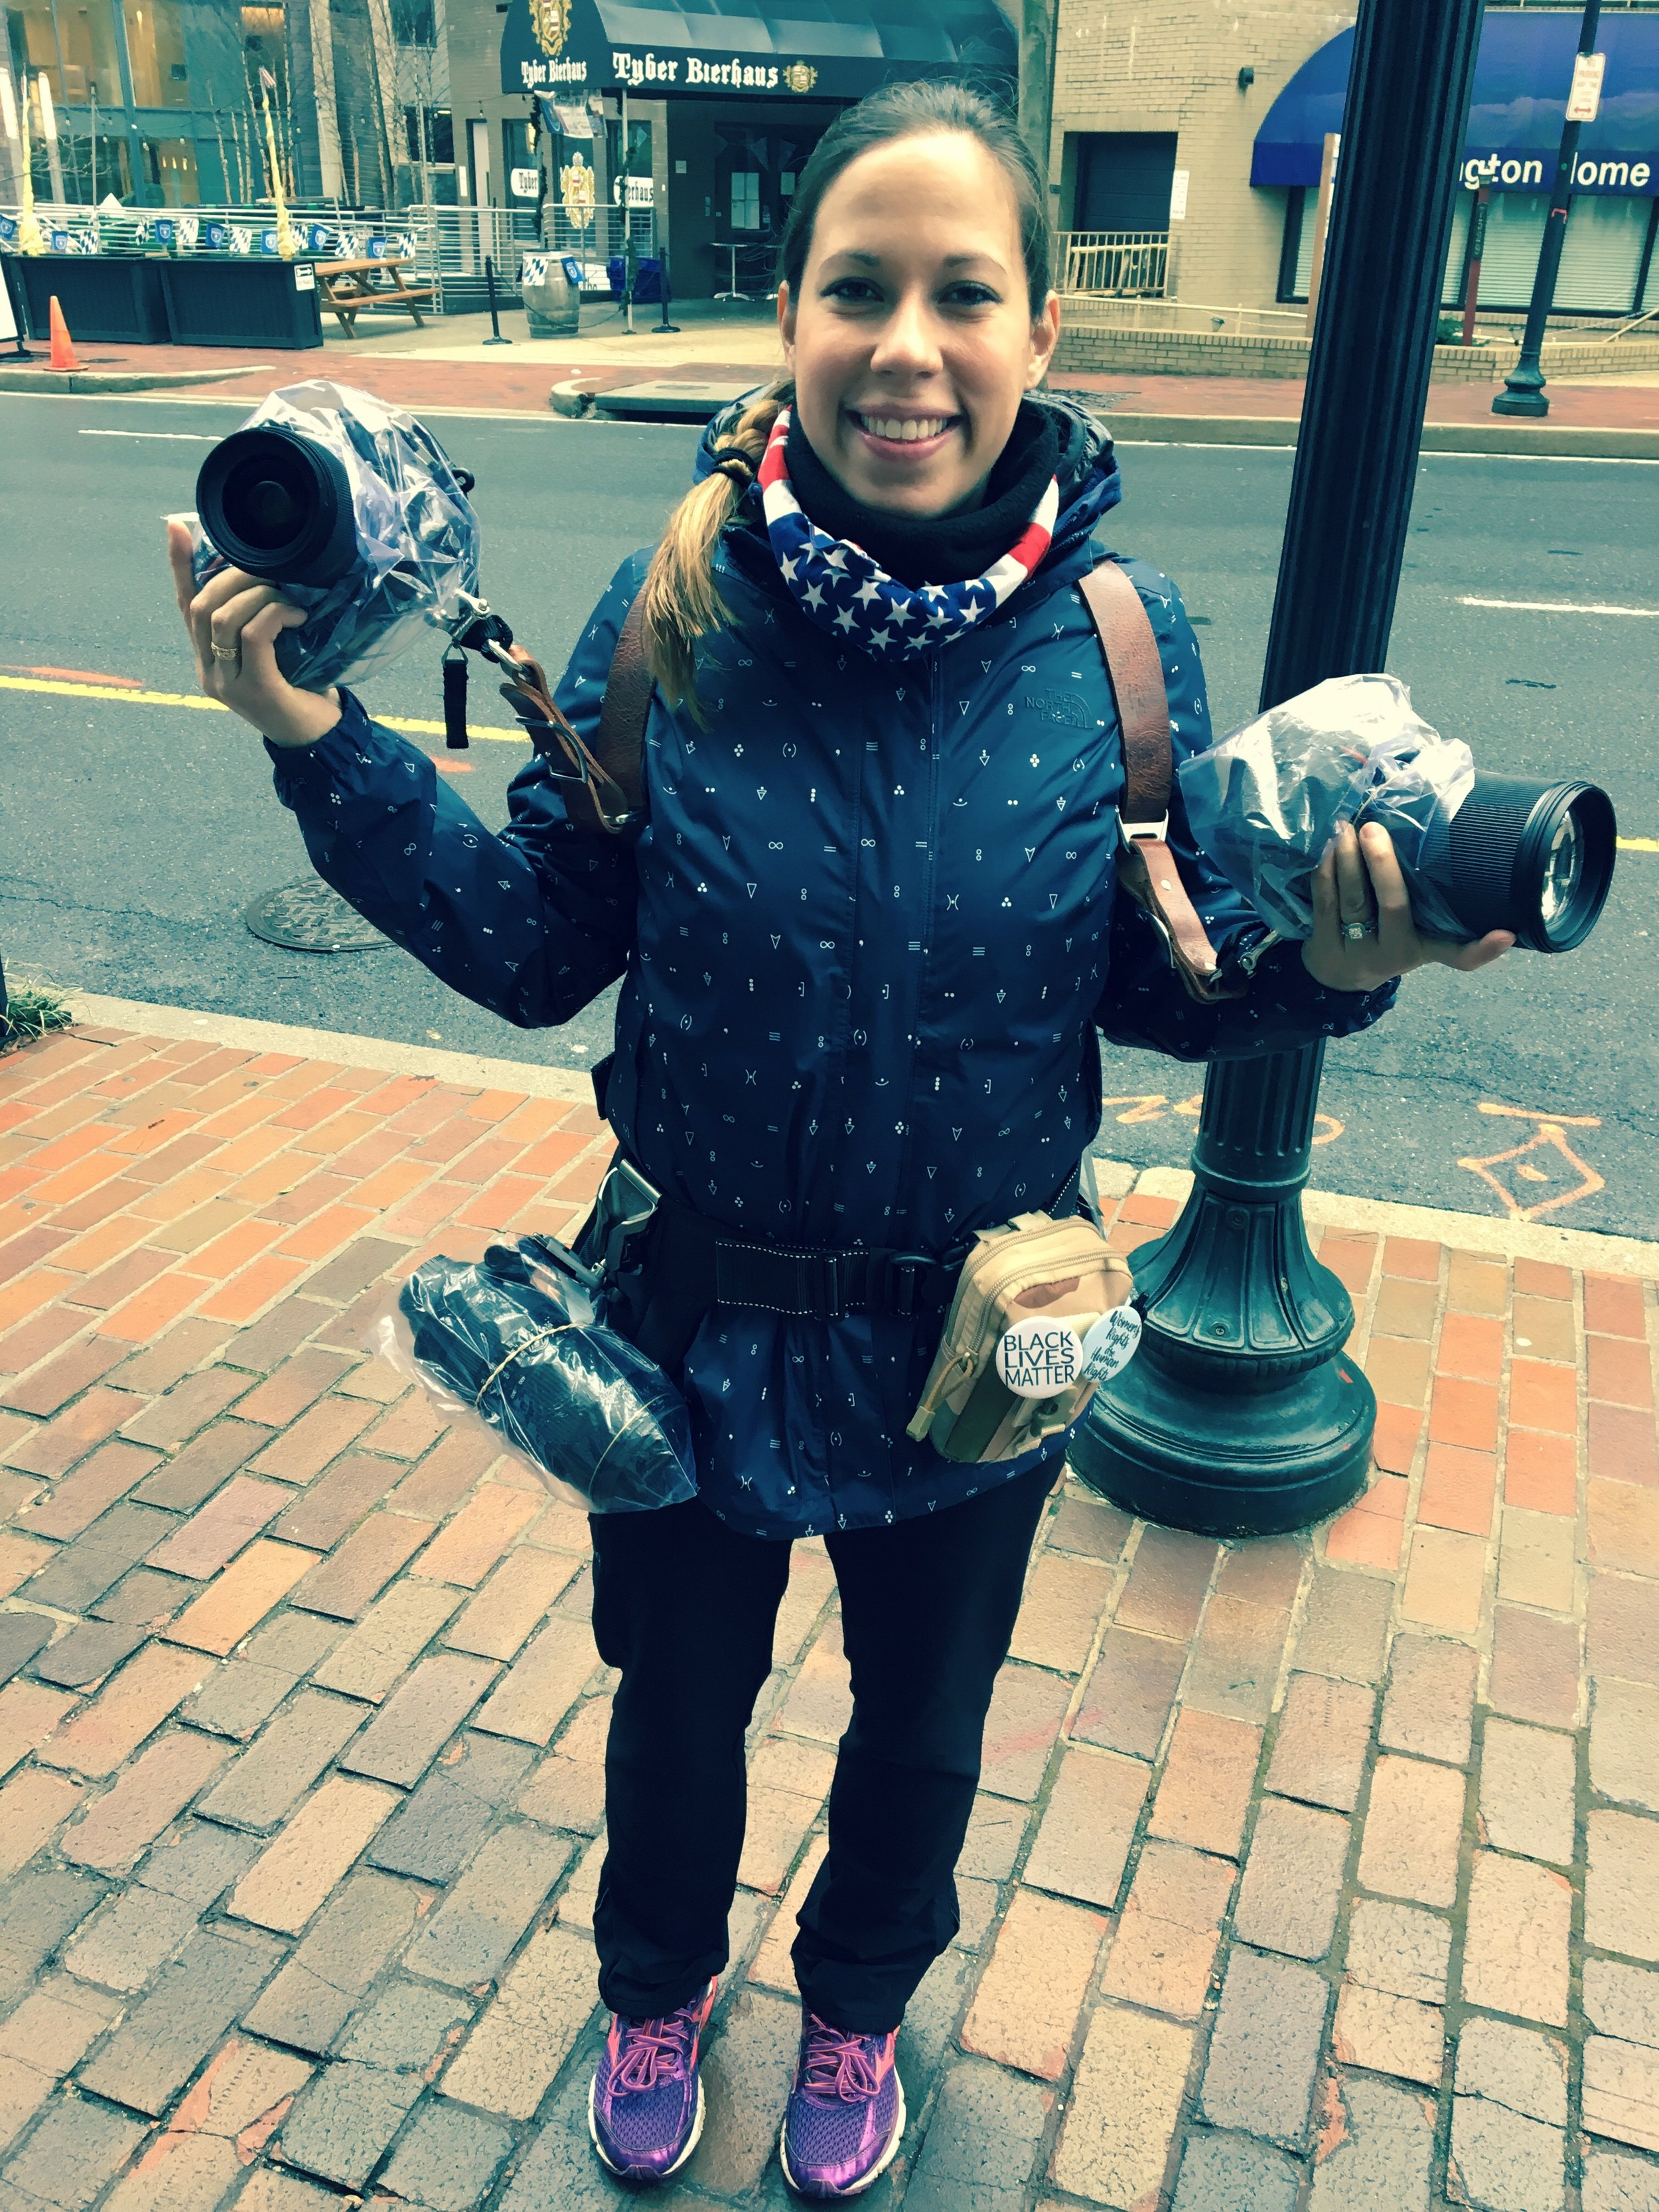 Photographing The Women's March, Washington D.C.